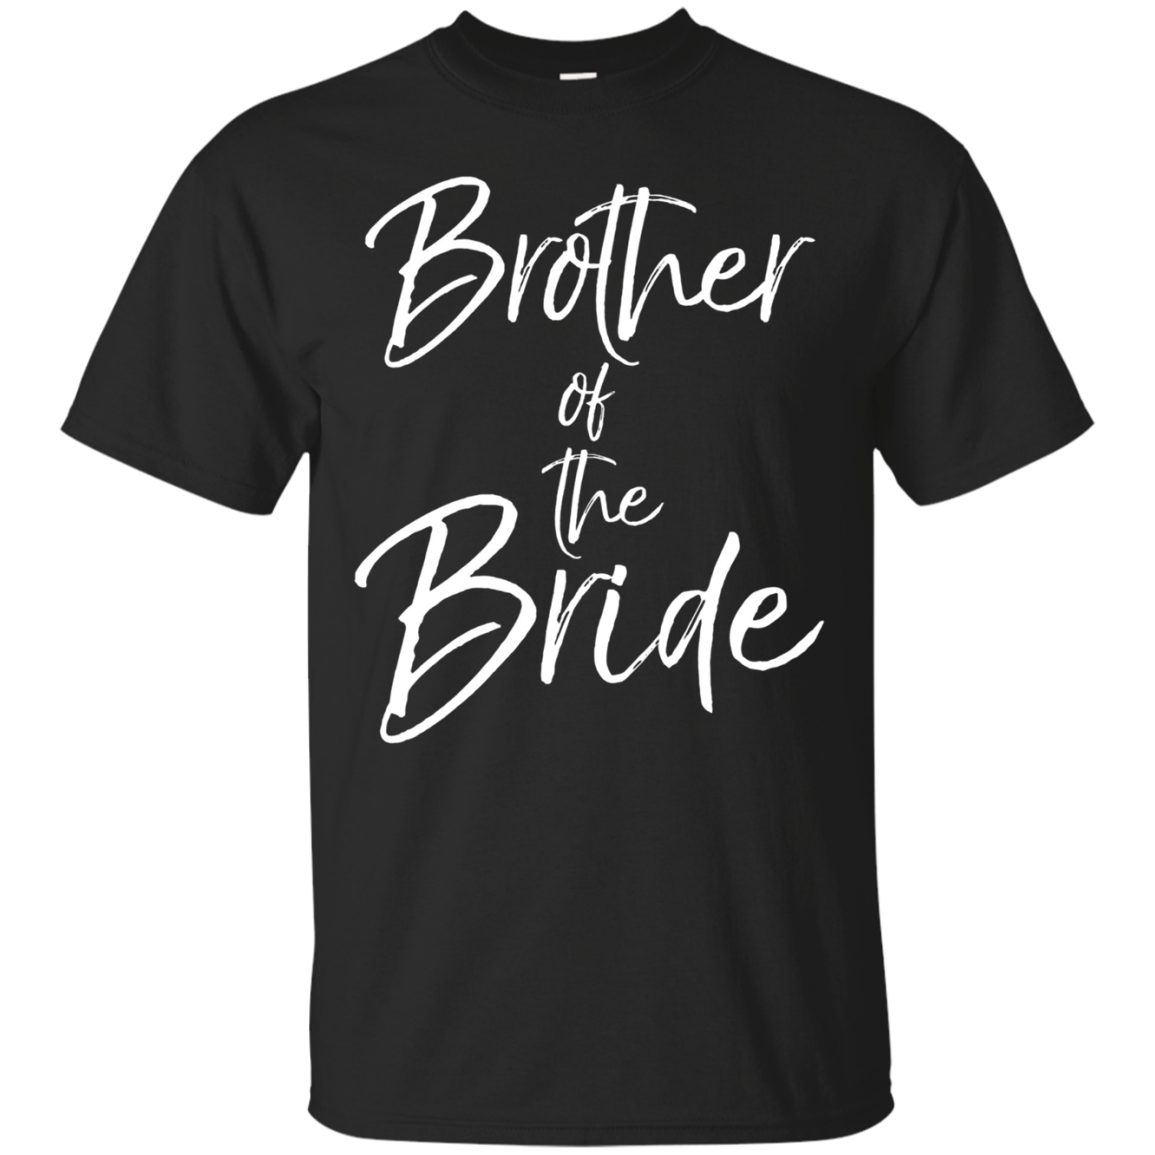 Brother of the Bride Long Sleeve Shirt for Men Boys Wedding